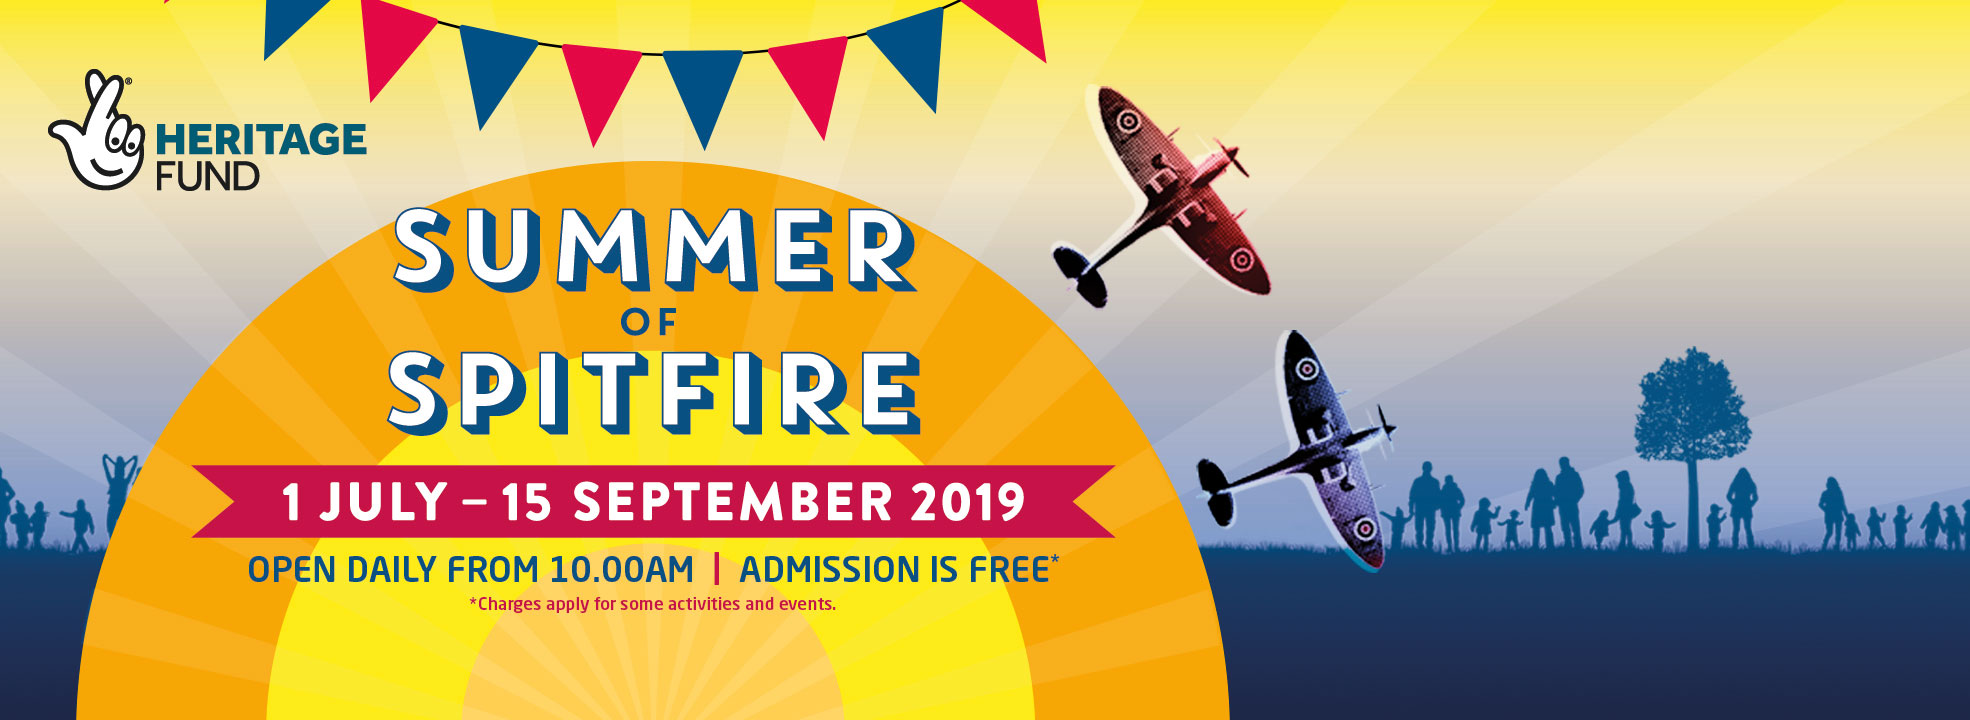 Join us for Summer of Spitfire at our London site.